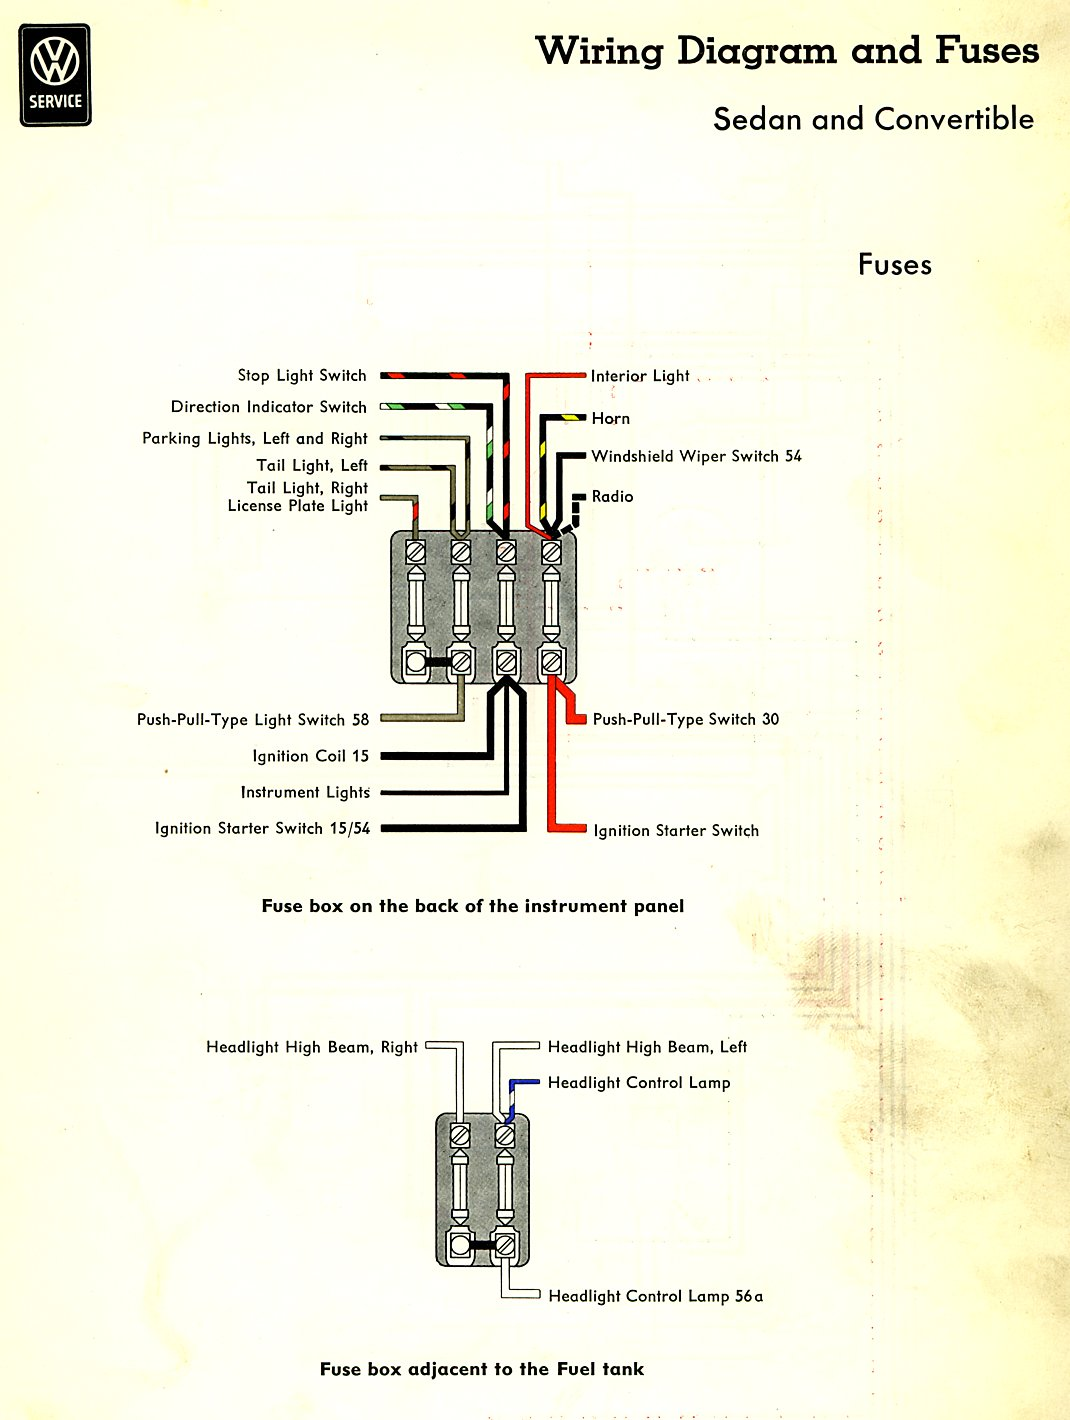 Wiring Diagram For 1974 Vw Super Beetle Library 74